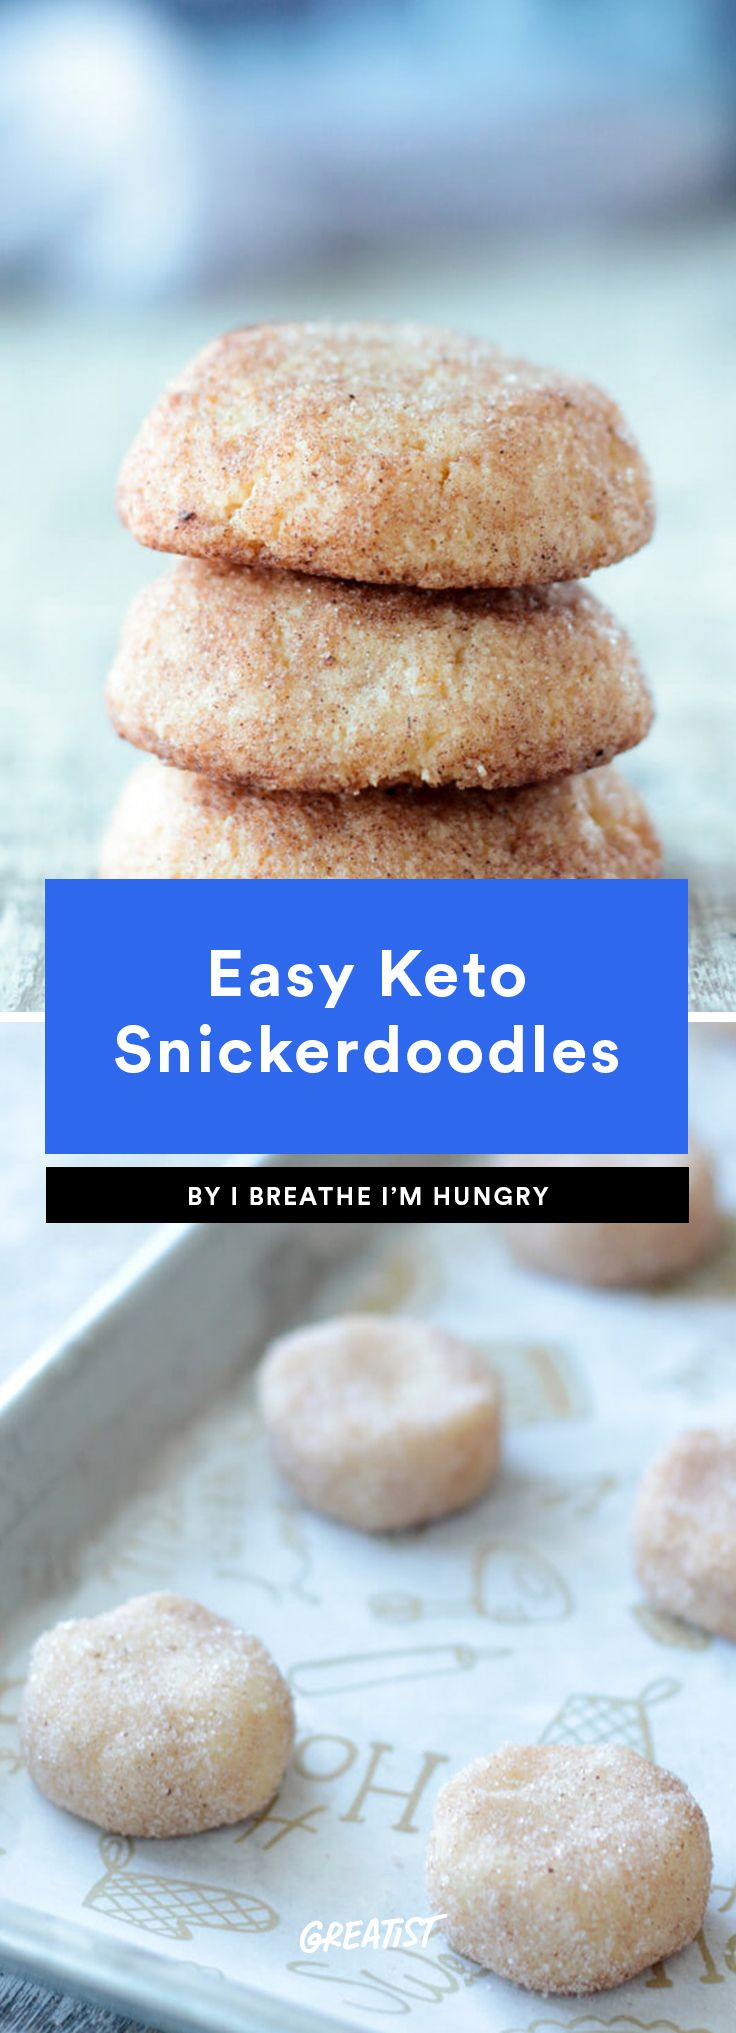 9 Keto Cookie Recipes That Are Somehow Part of a Diet | Food | Keto chocolate chips, Keto ...